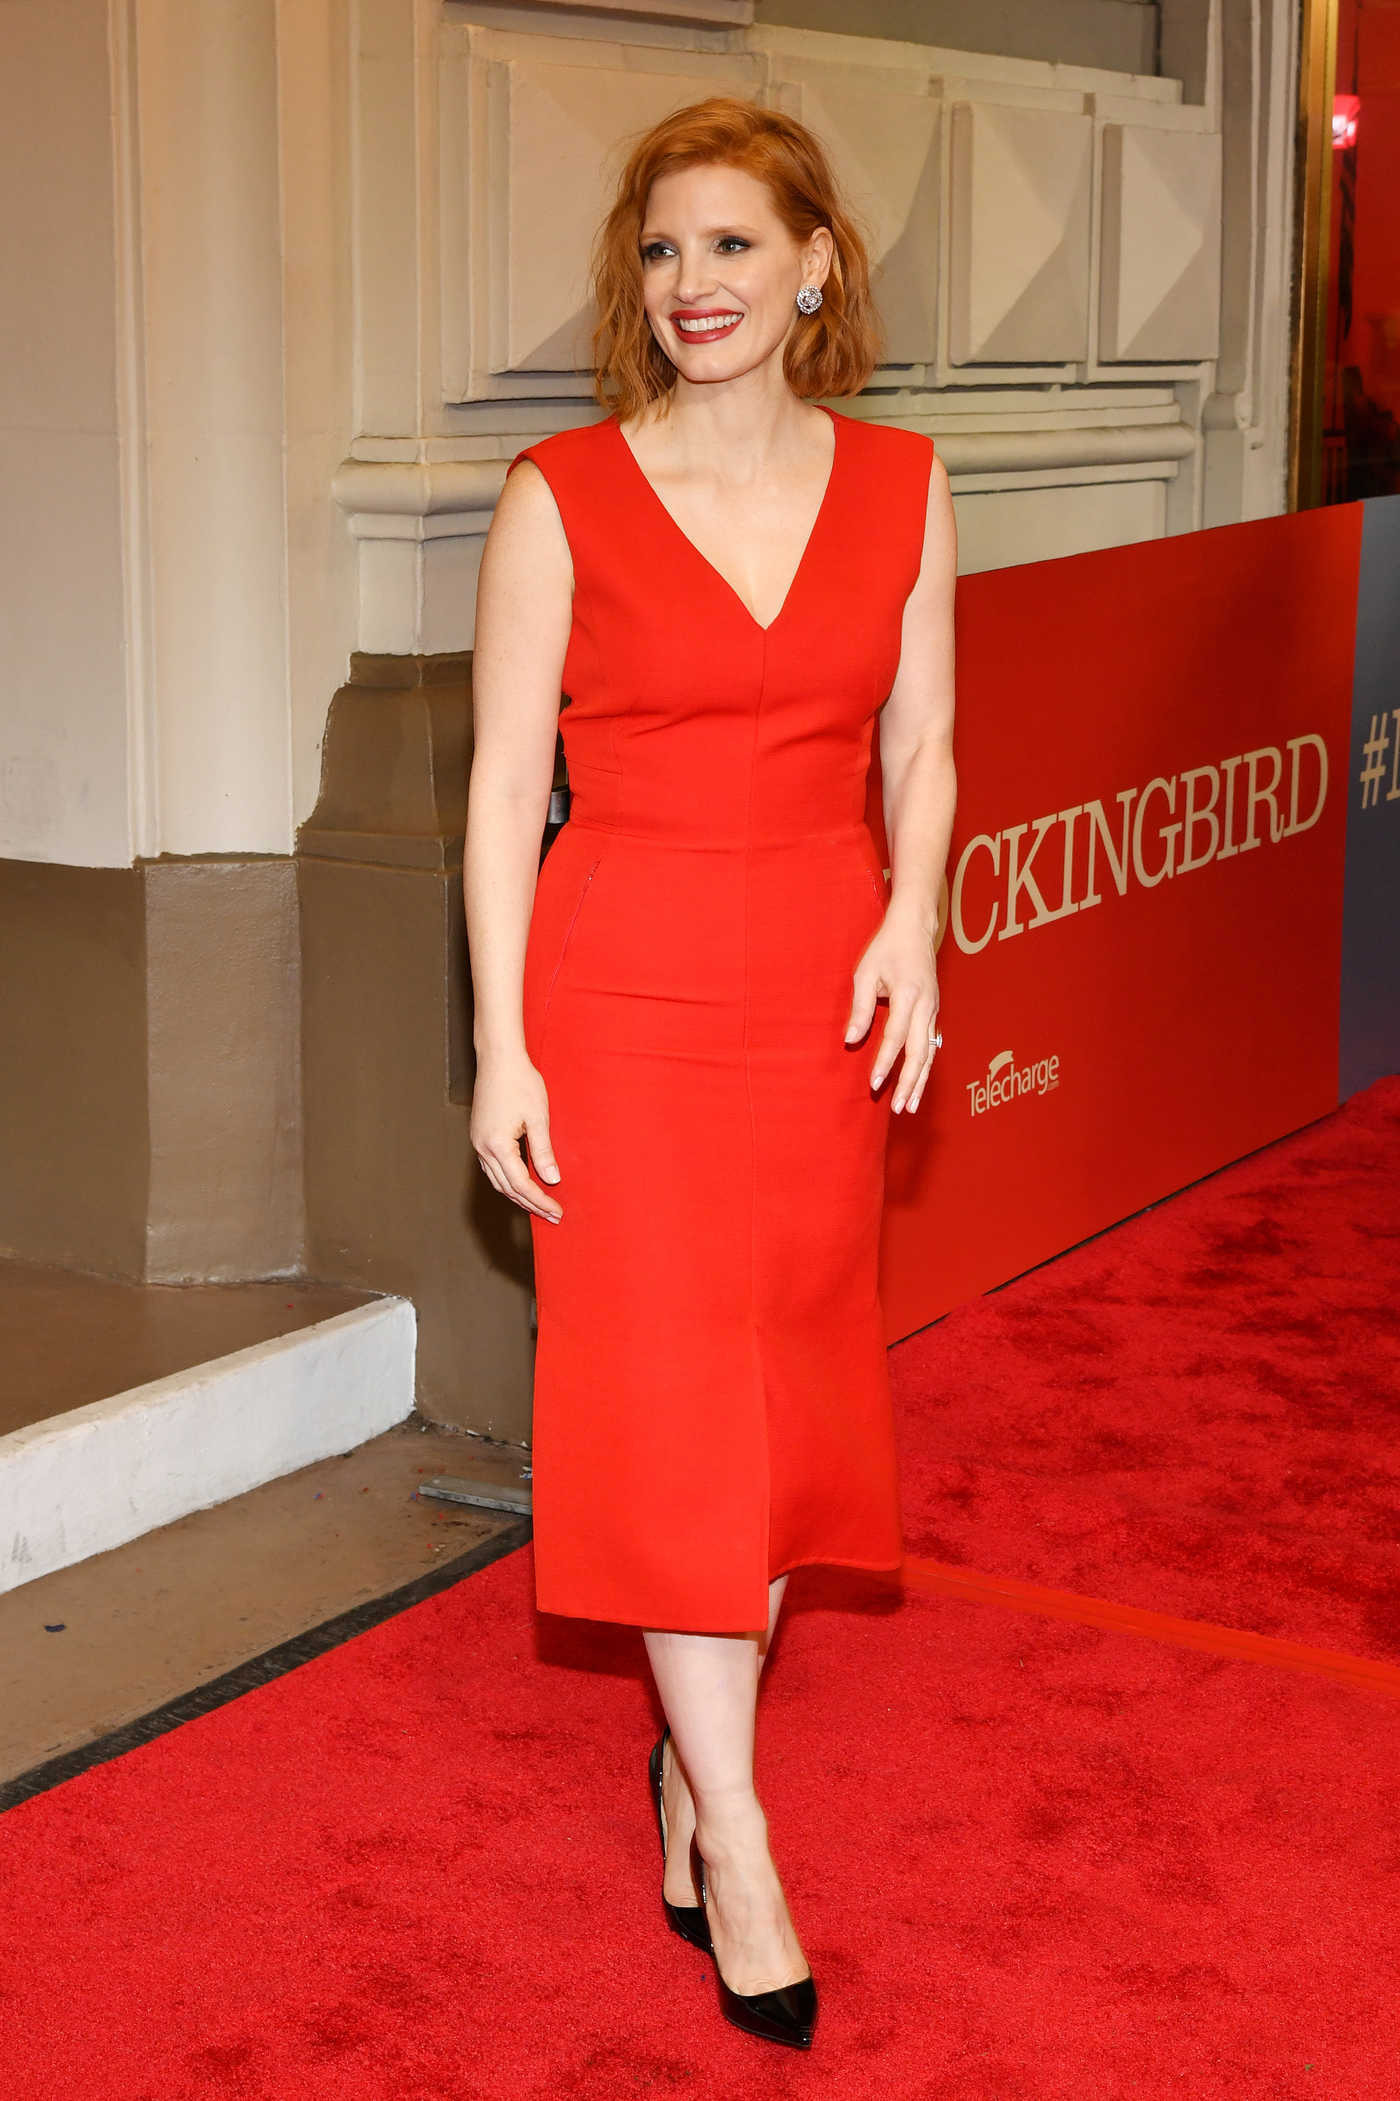 Jessica Chastain Attends To Kill A Mockingbird Broadway Opening Night in NYC 12/13/2018